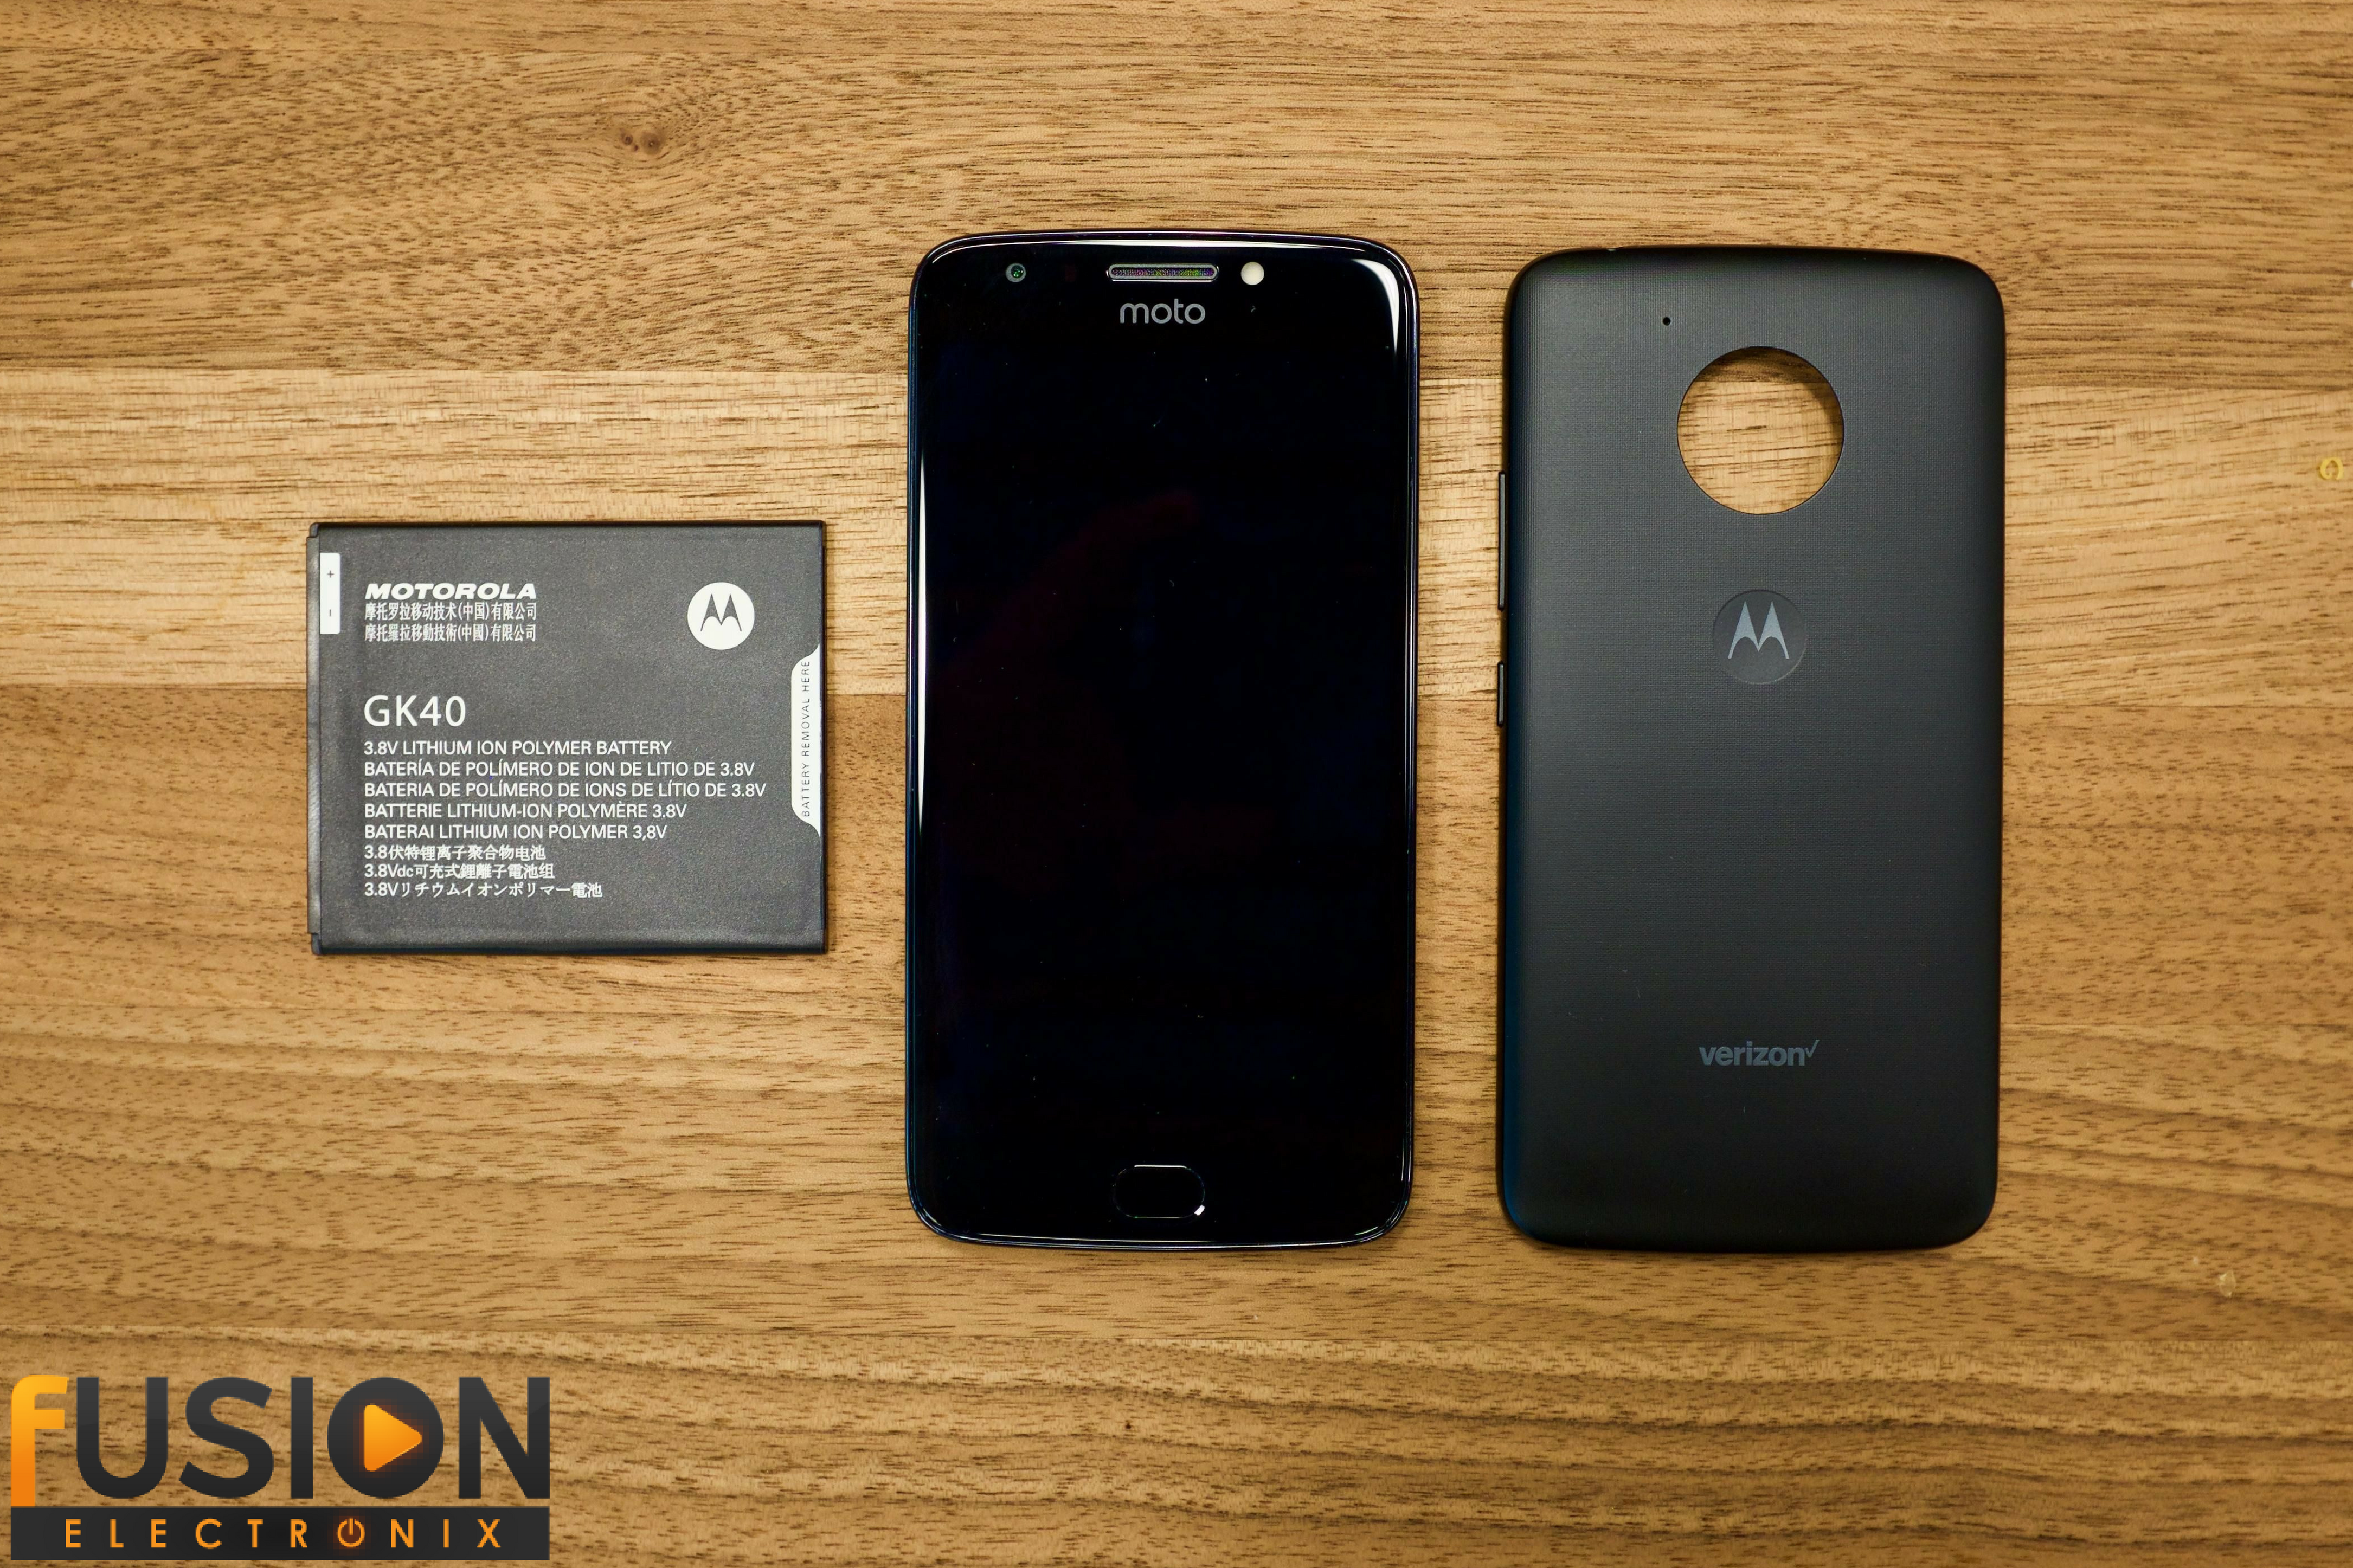 The Moto E4: Enjoy Premium Functionality at an Affordable Price